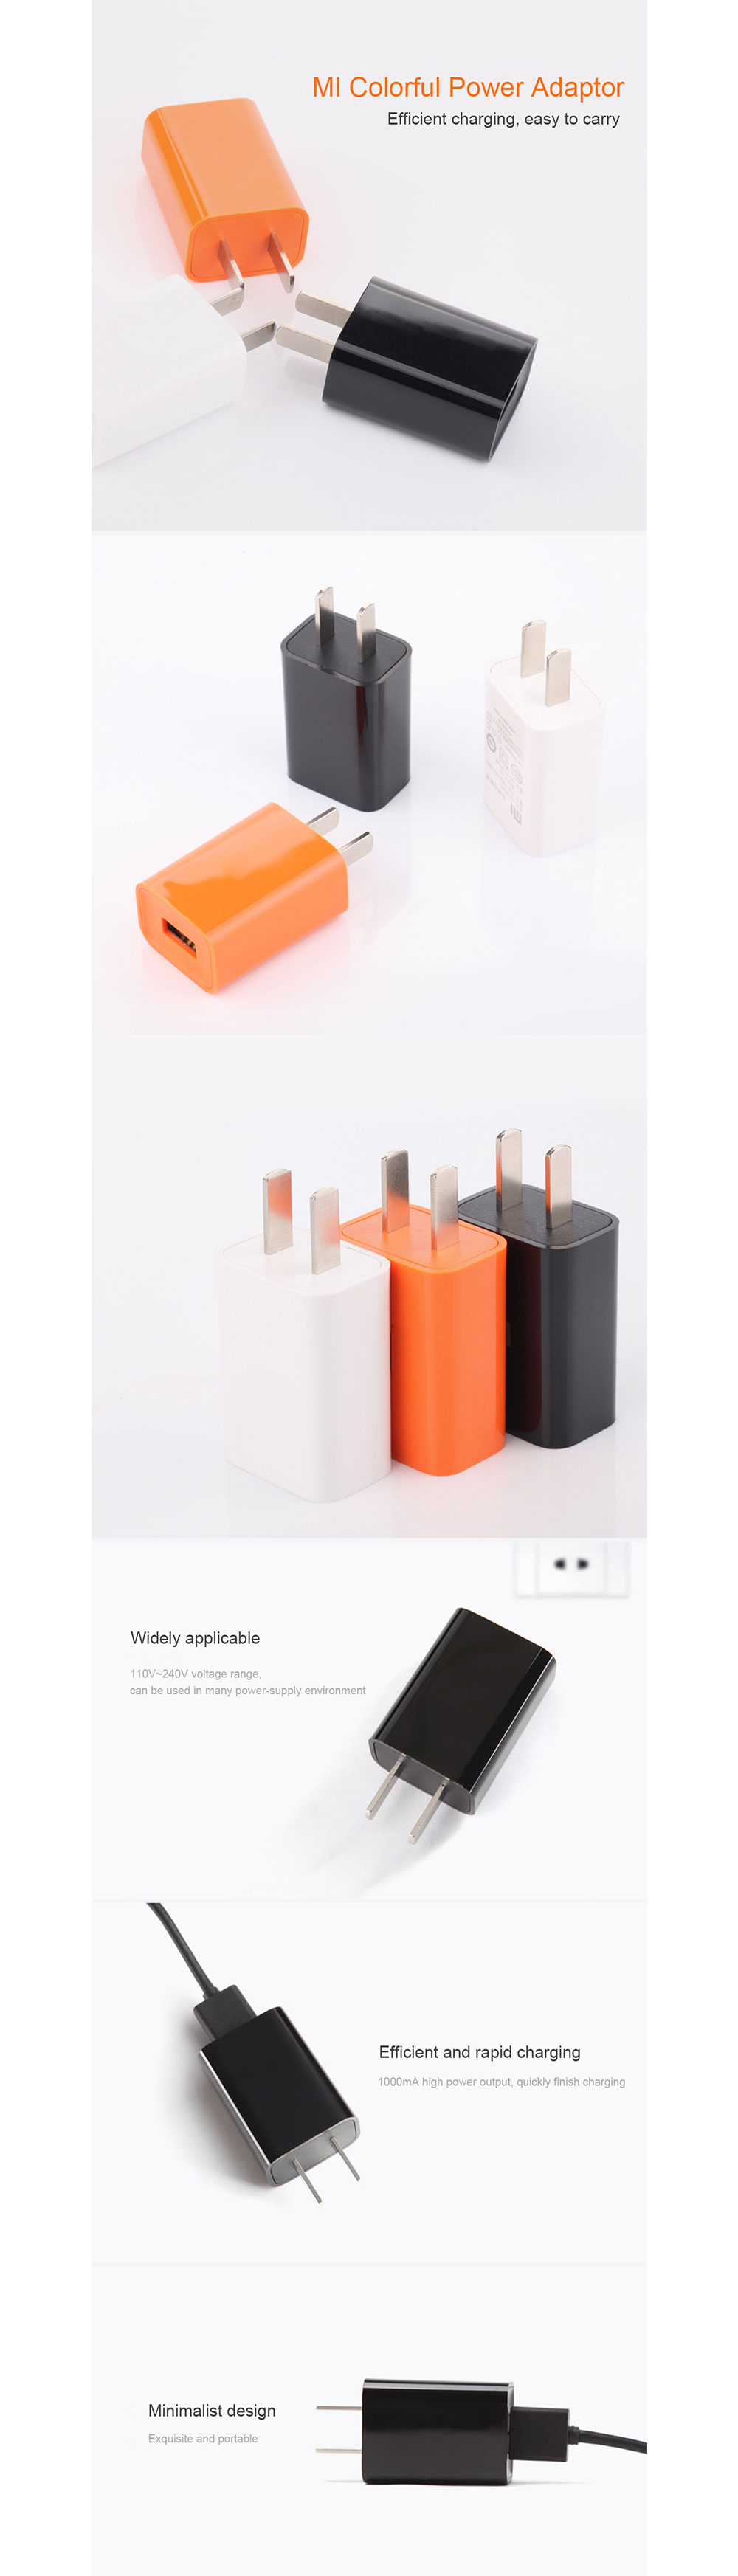 Xiaomi Colorful USB Power Charger in Pakistan